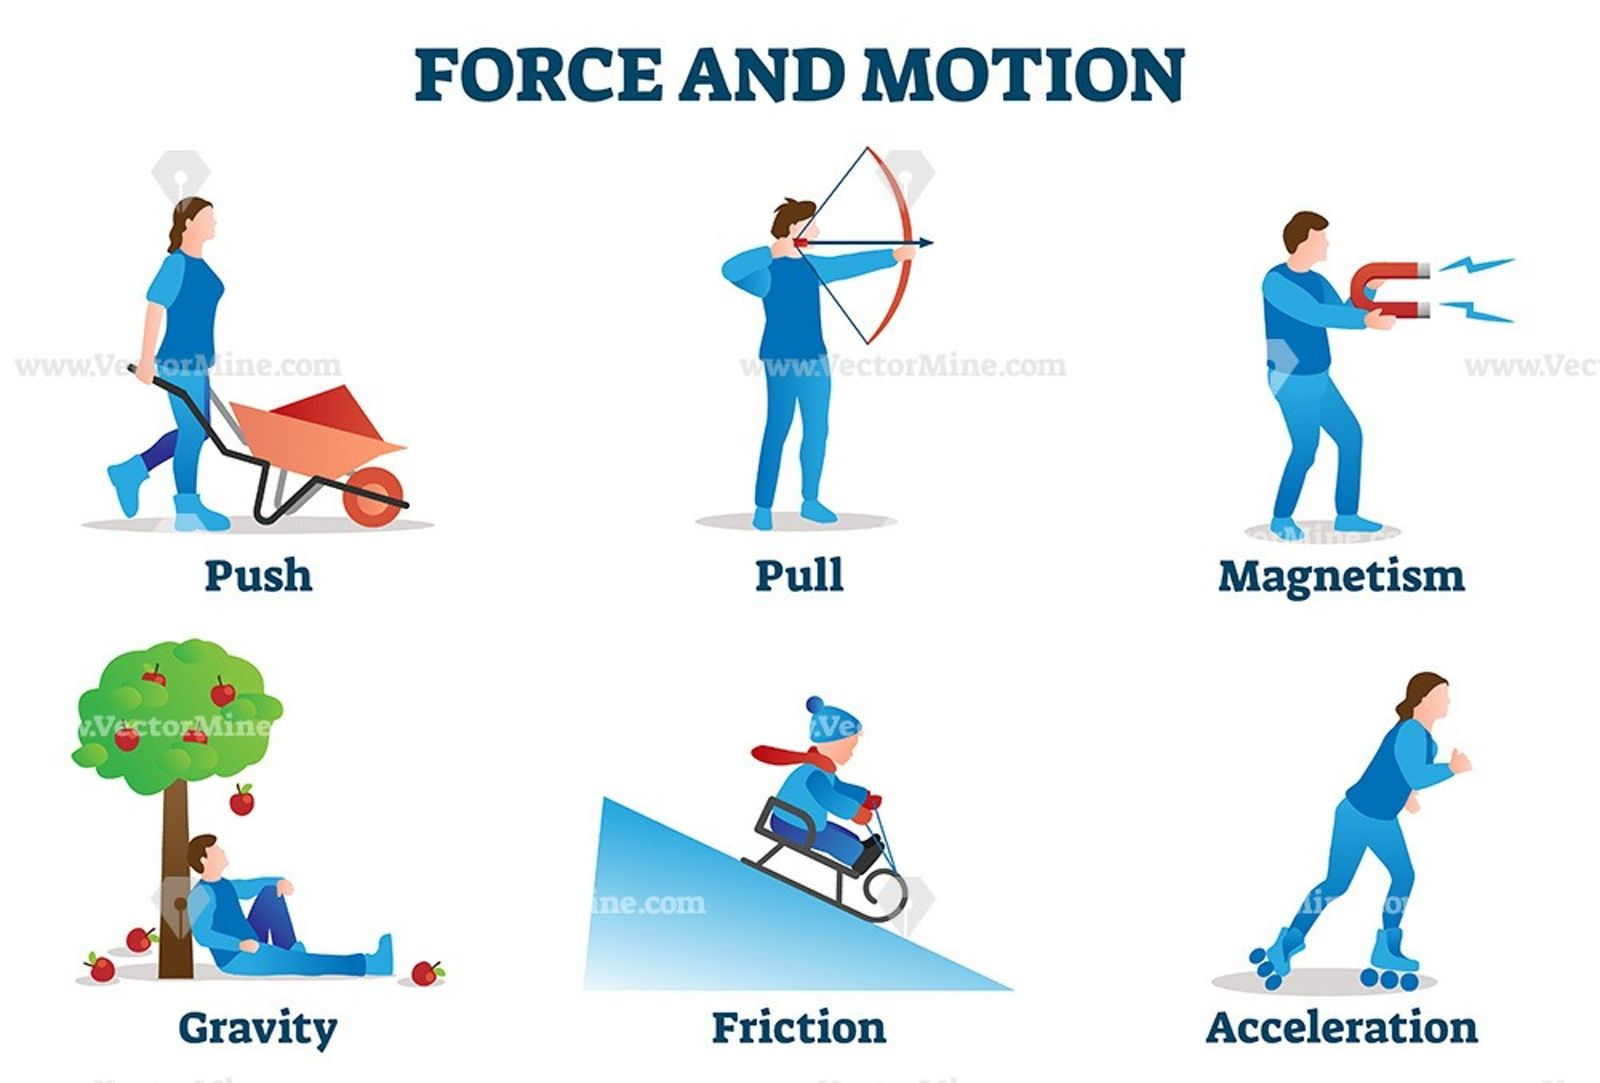 hight resolution of Force and motion vector illustration   Force and motion